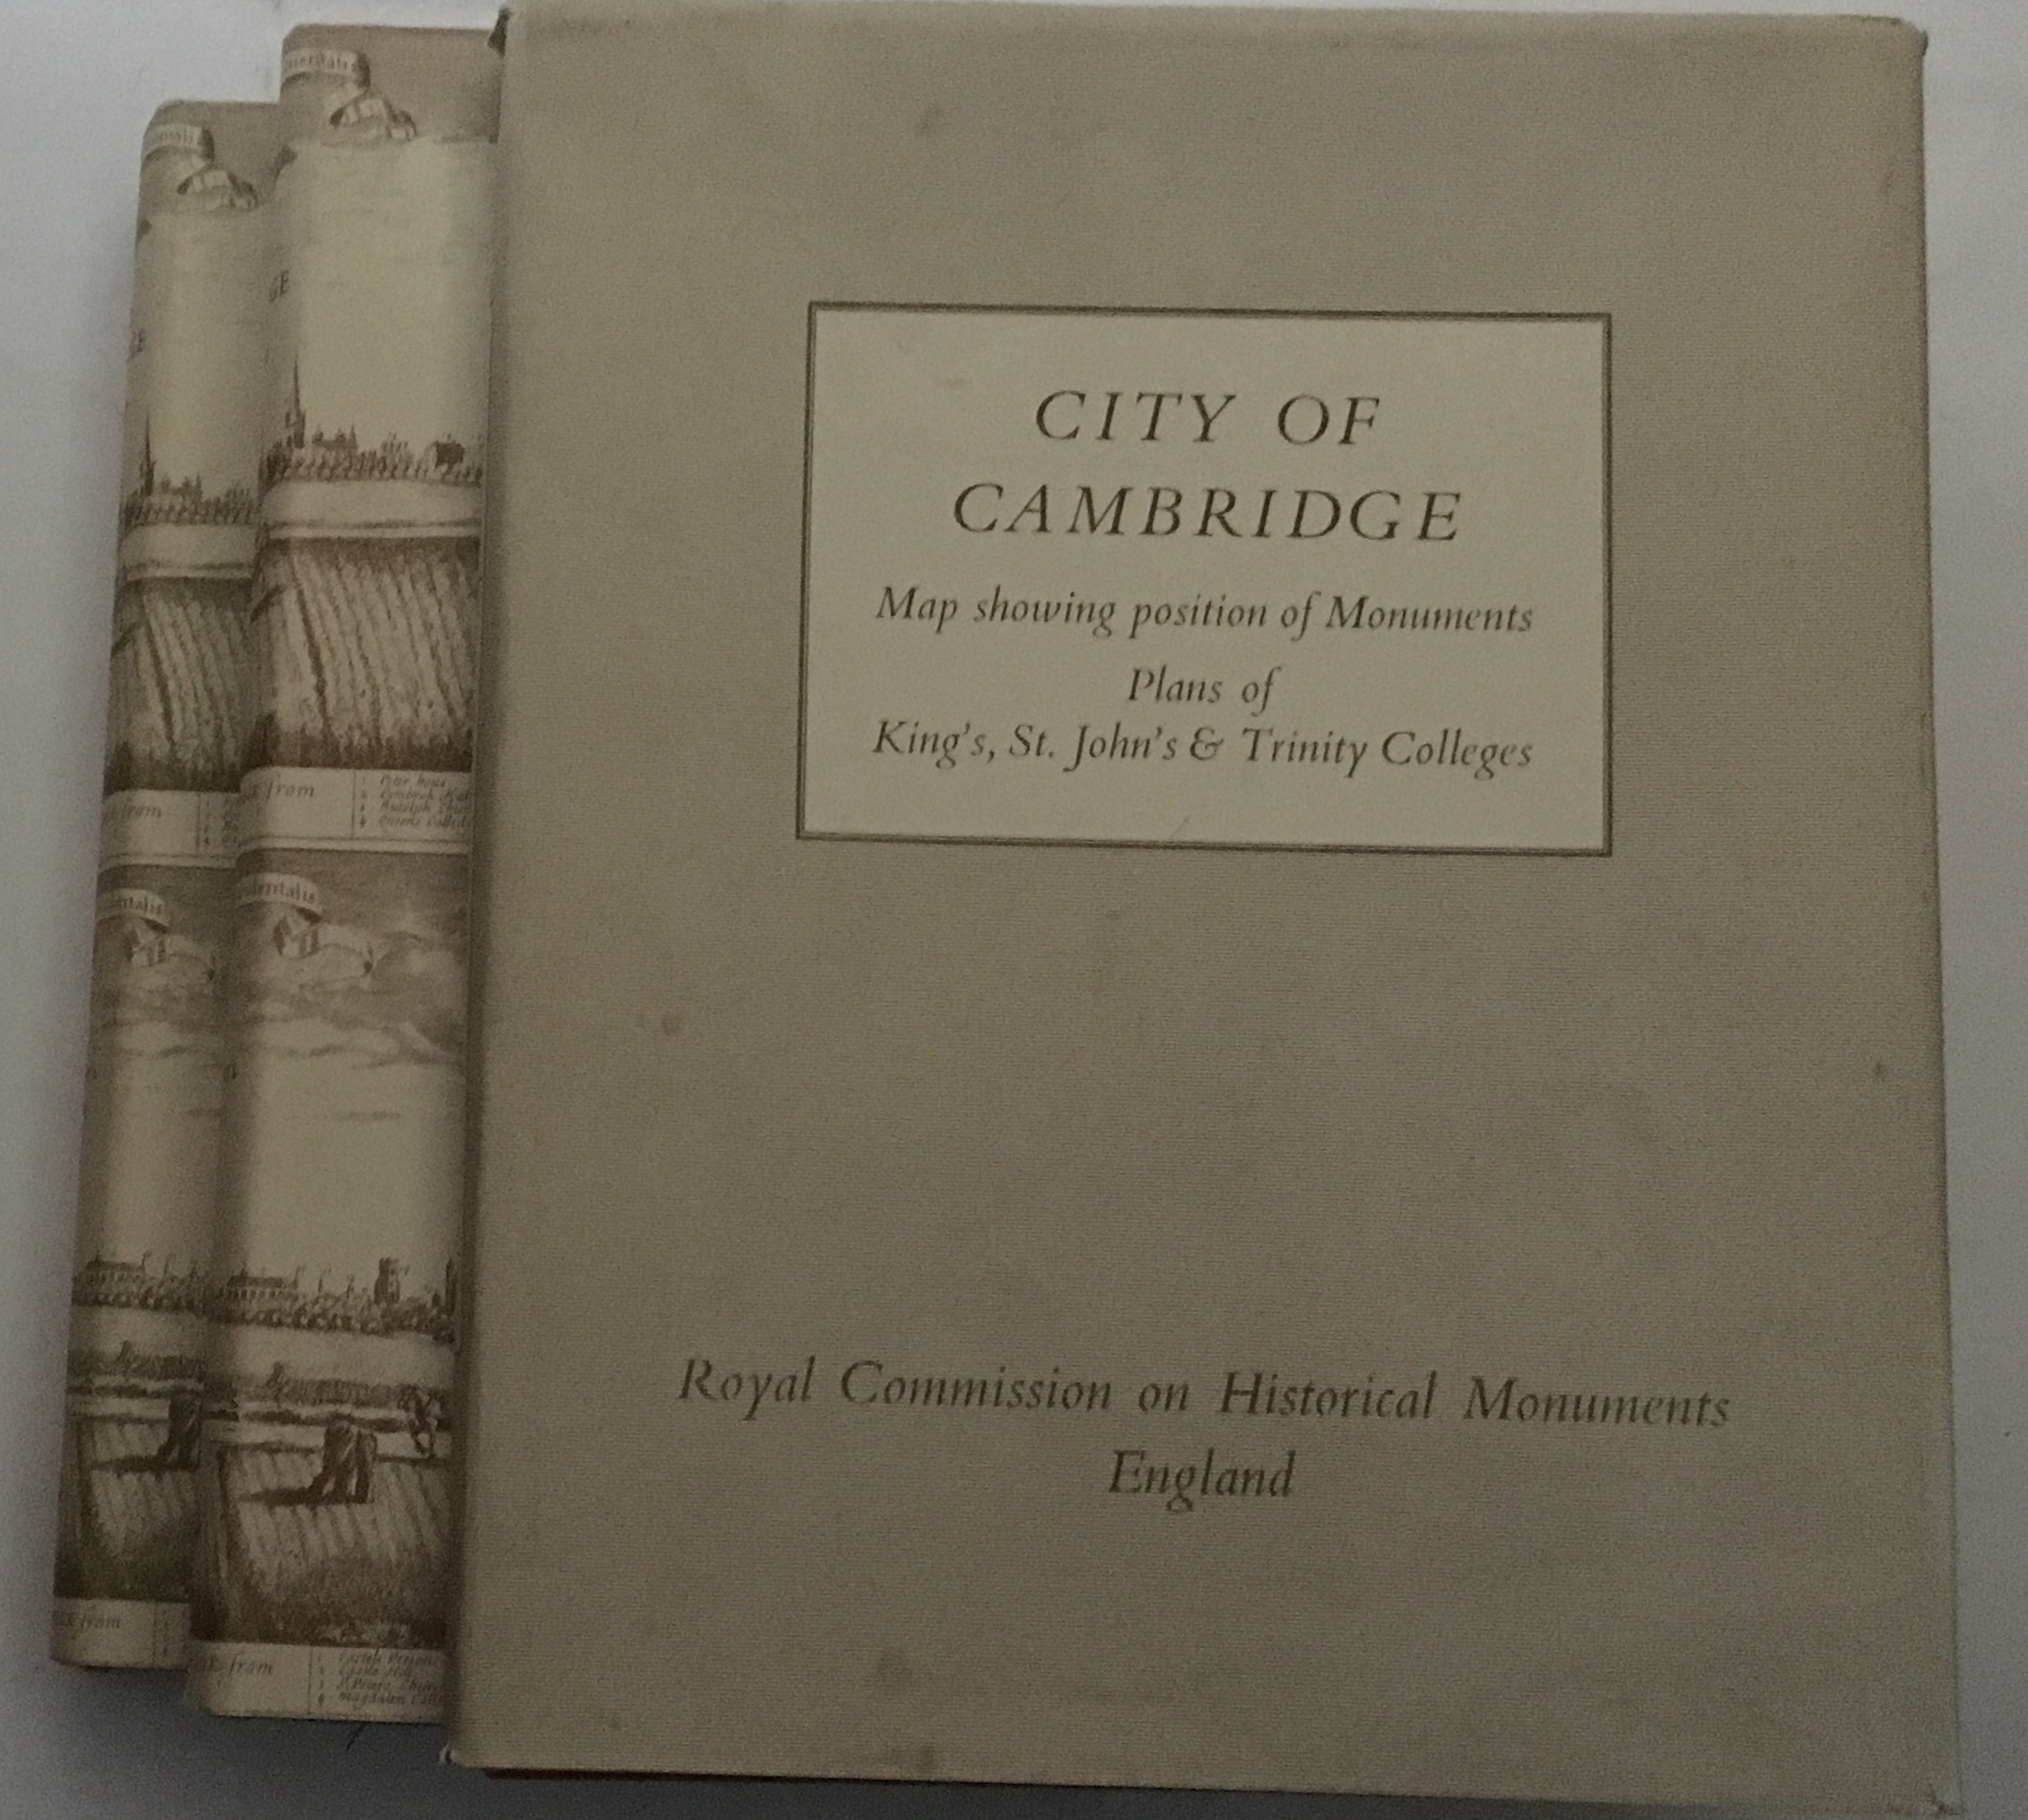 THE CITY OF CAMBRIDGE: A Survey and Inventory by the Royal Commission on Historical Monuments, Parts I and II and Map :, Royal Commission on Historical Monuments ;